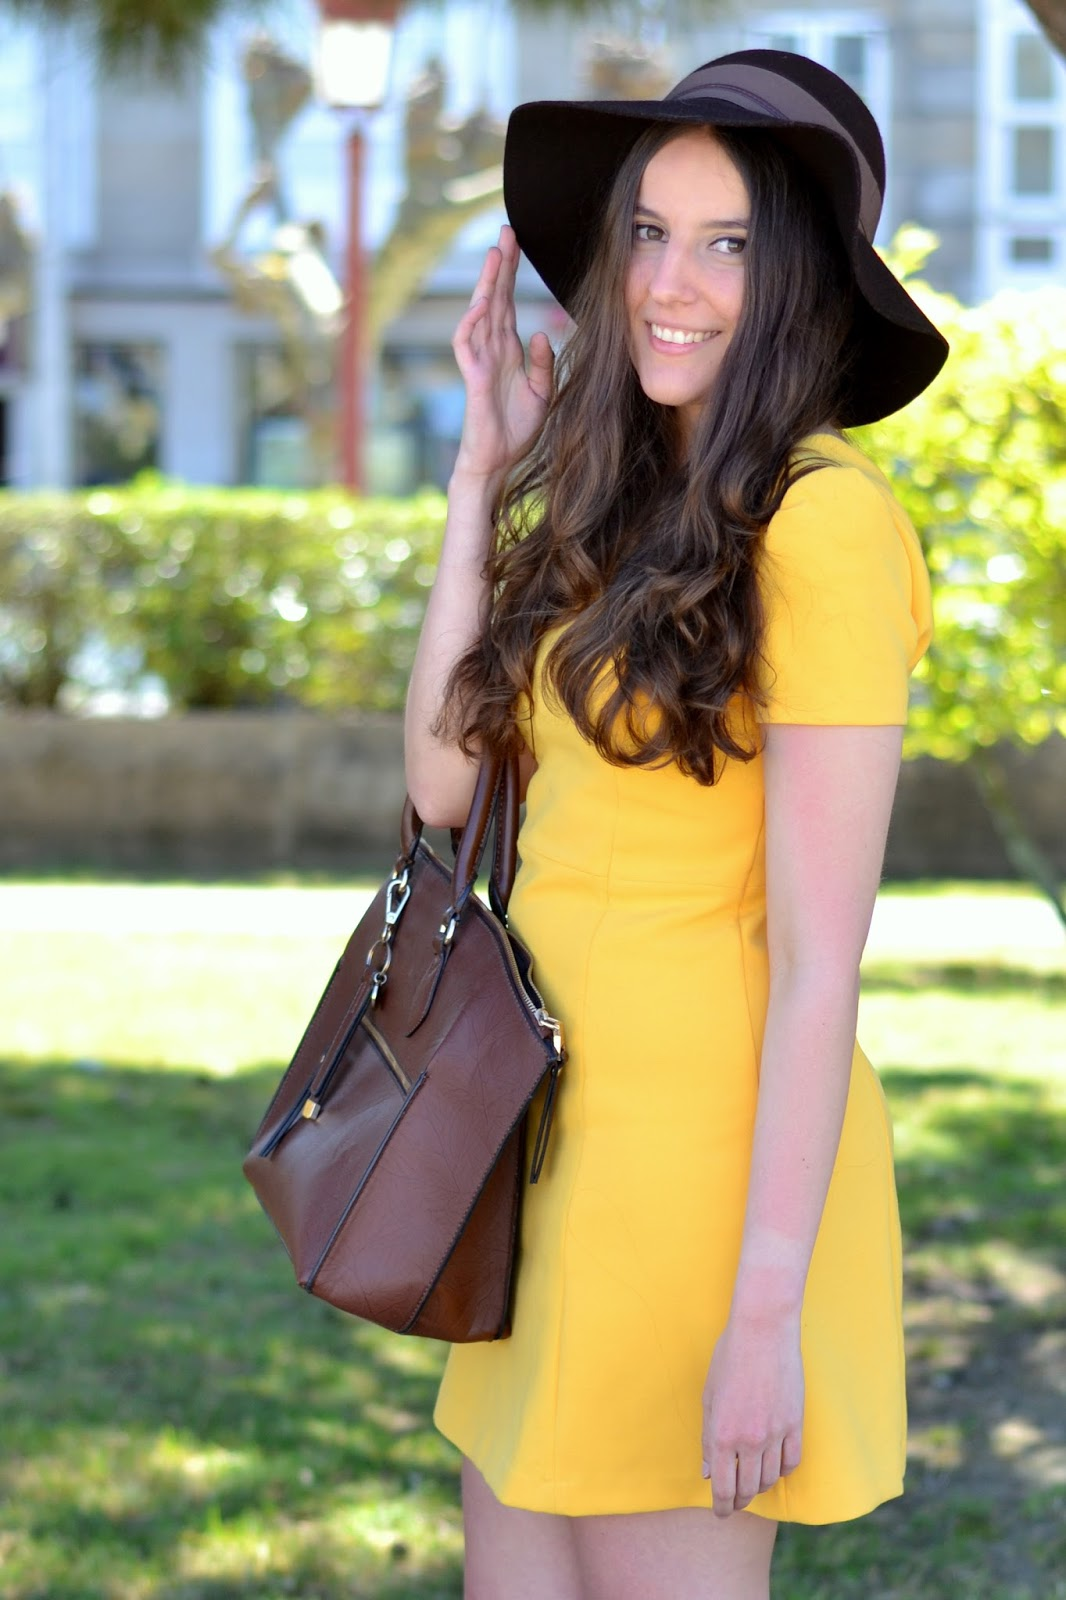 zara yellow dress, parfois brown hat and bag